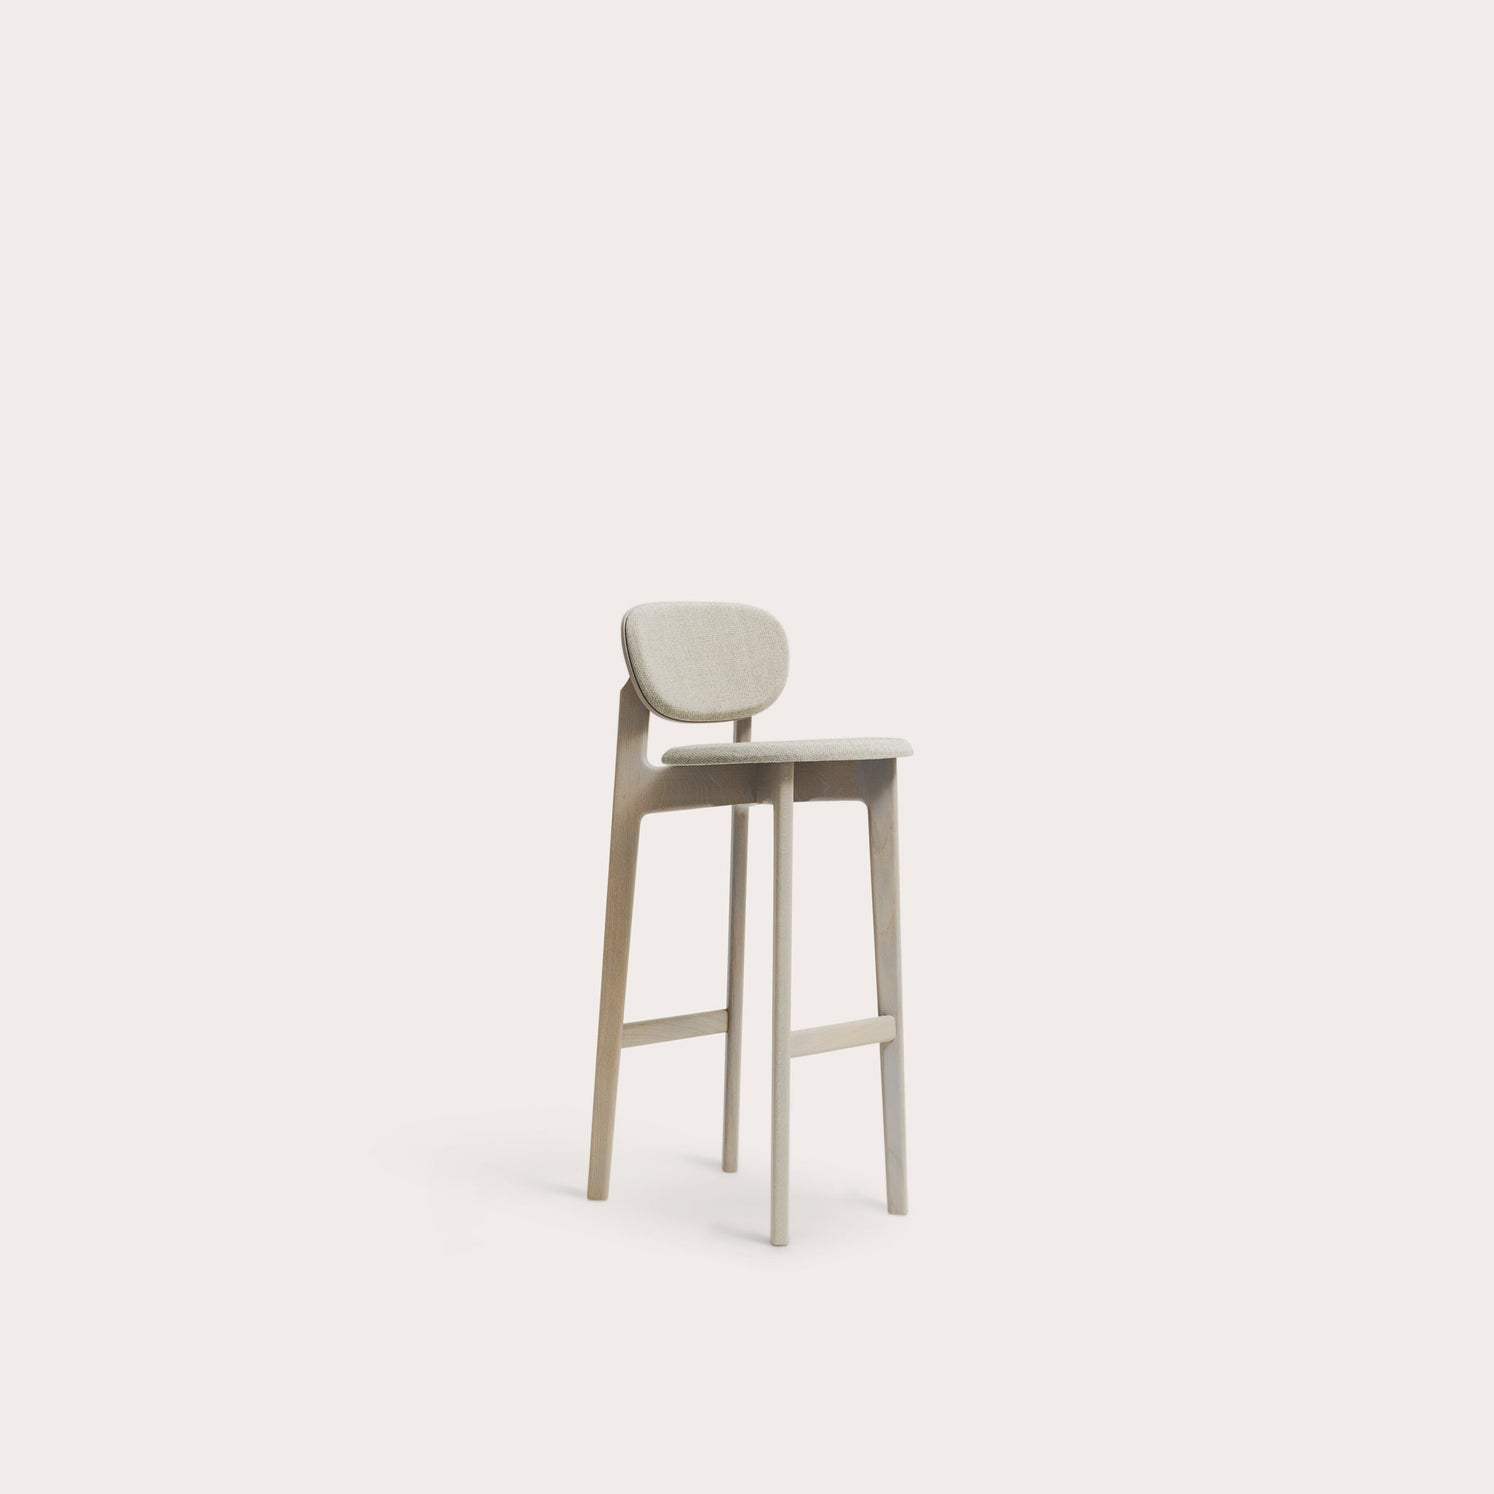 Zenso Bar Stool Stools Formstelle Designer Furniture Sku: 006-120-10130